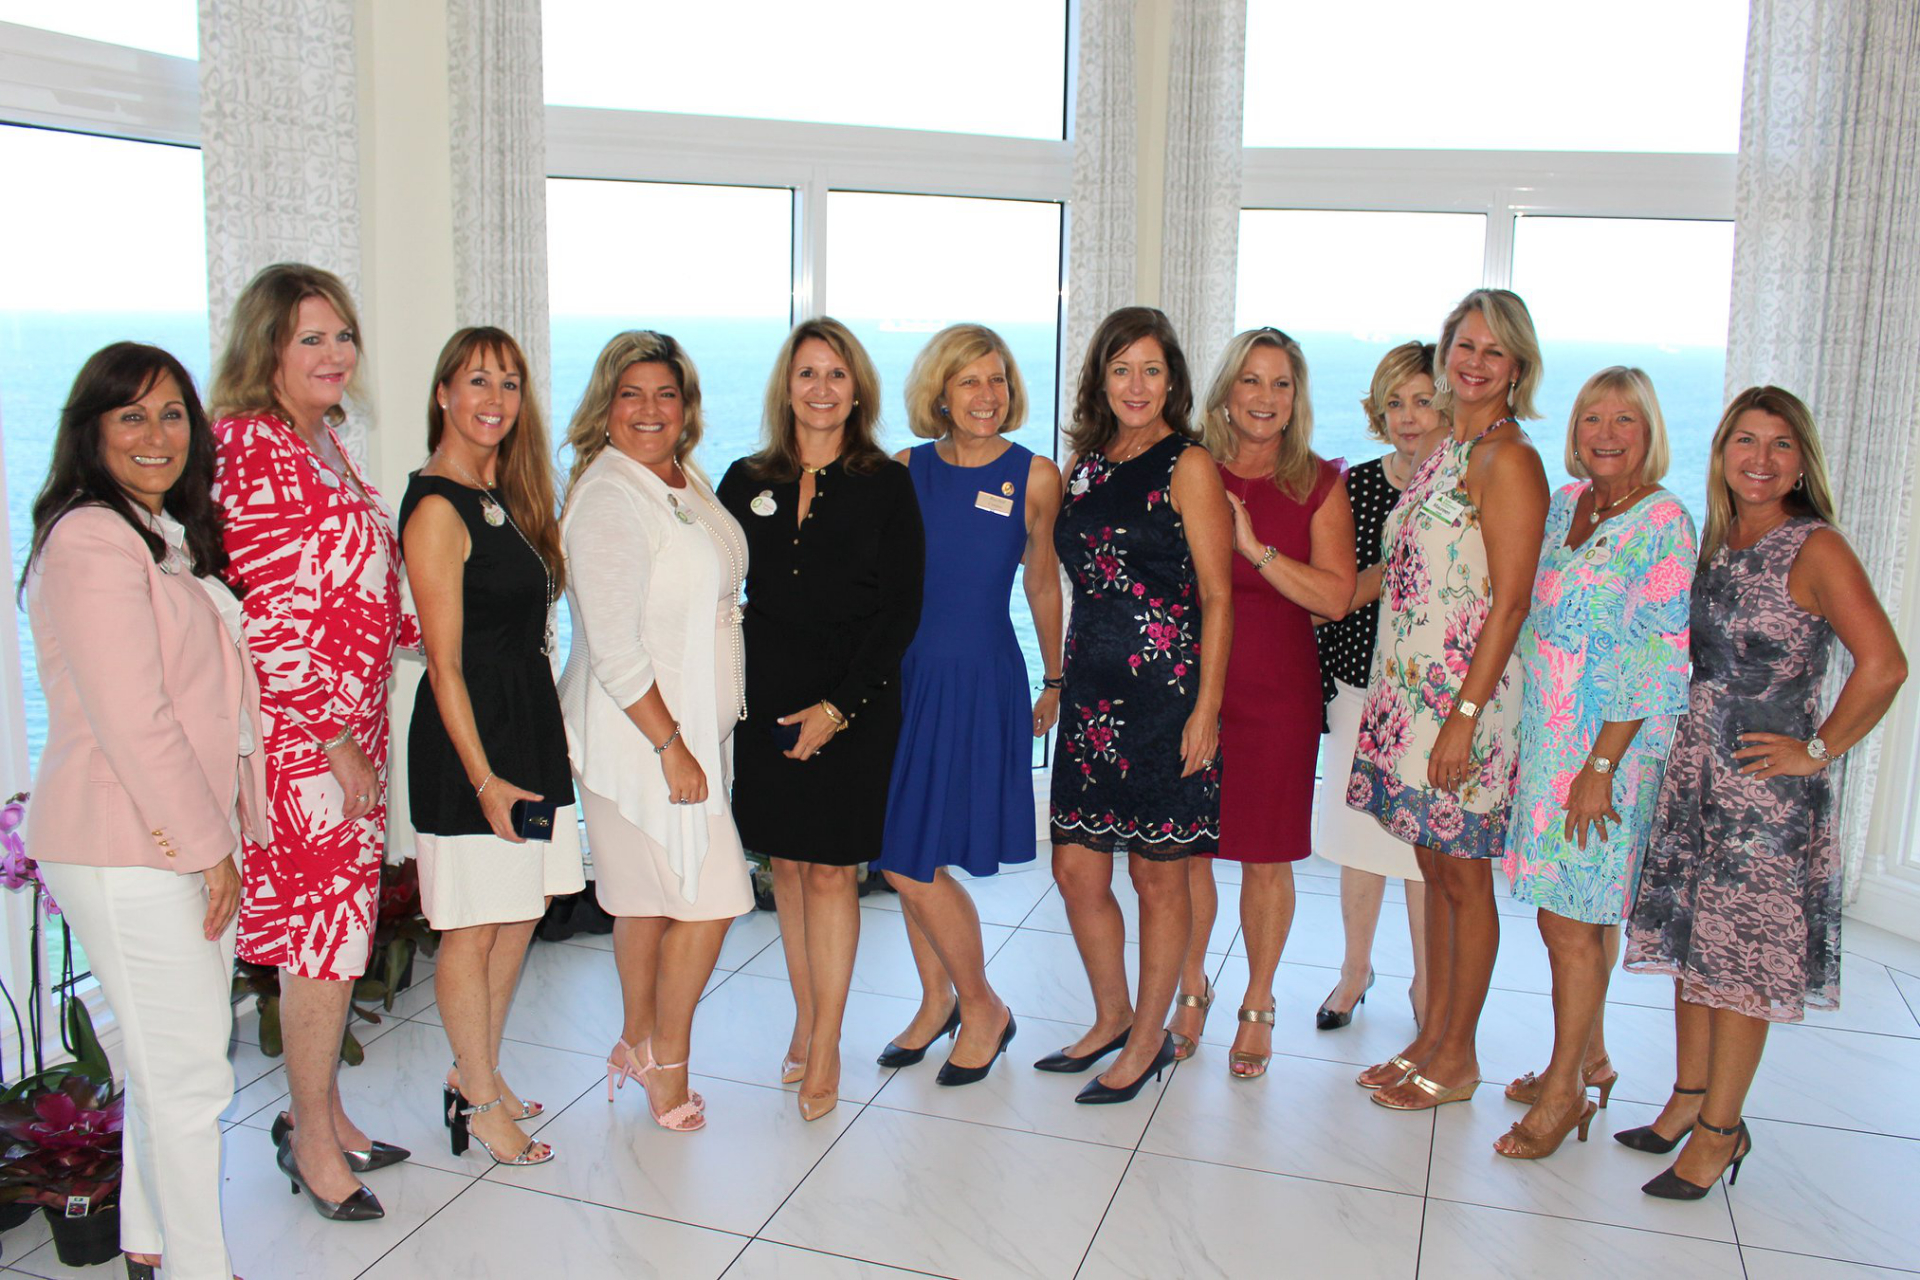 Christine Battles Co-Chairs the Annual Rosé Soirée by JA Circle of Wise Women